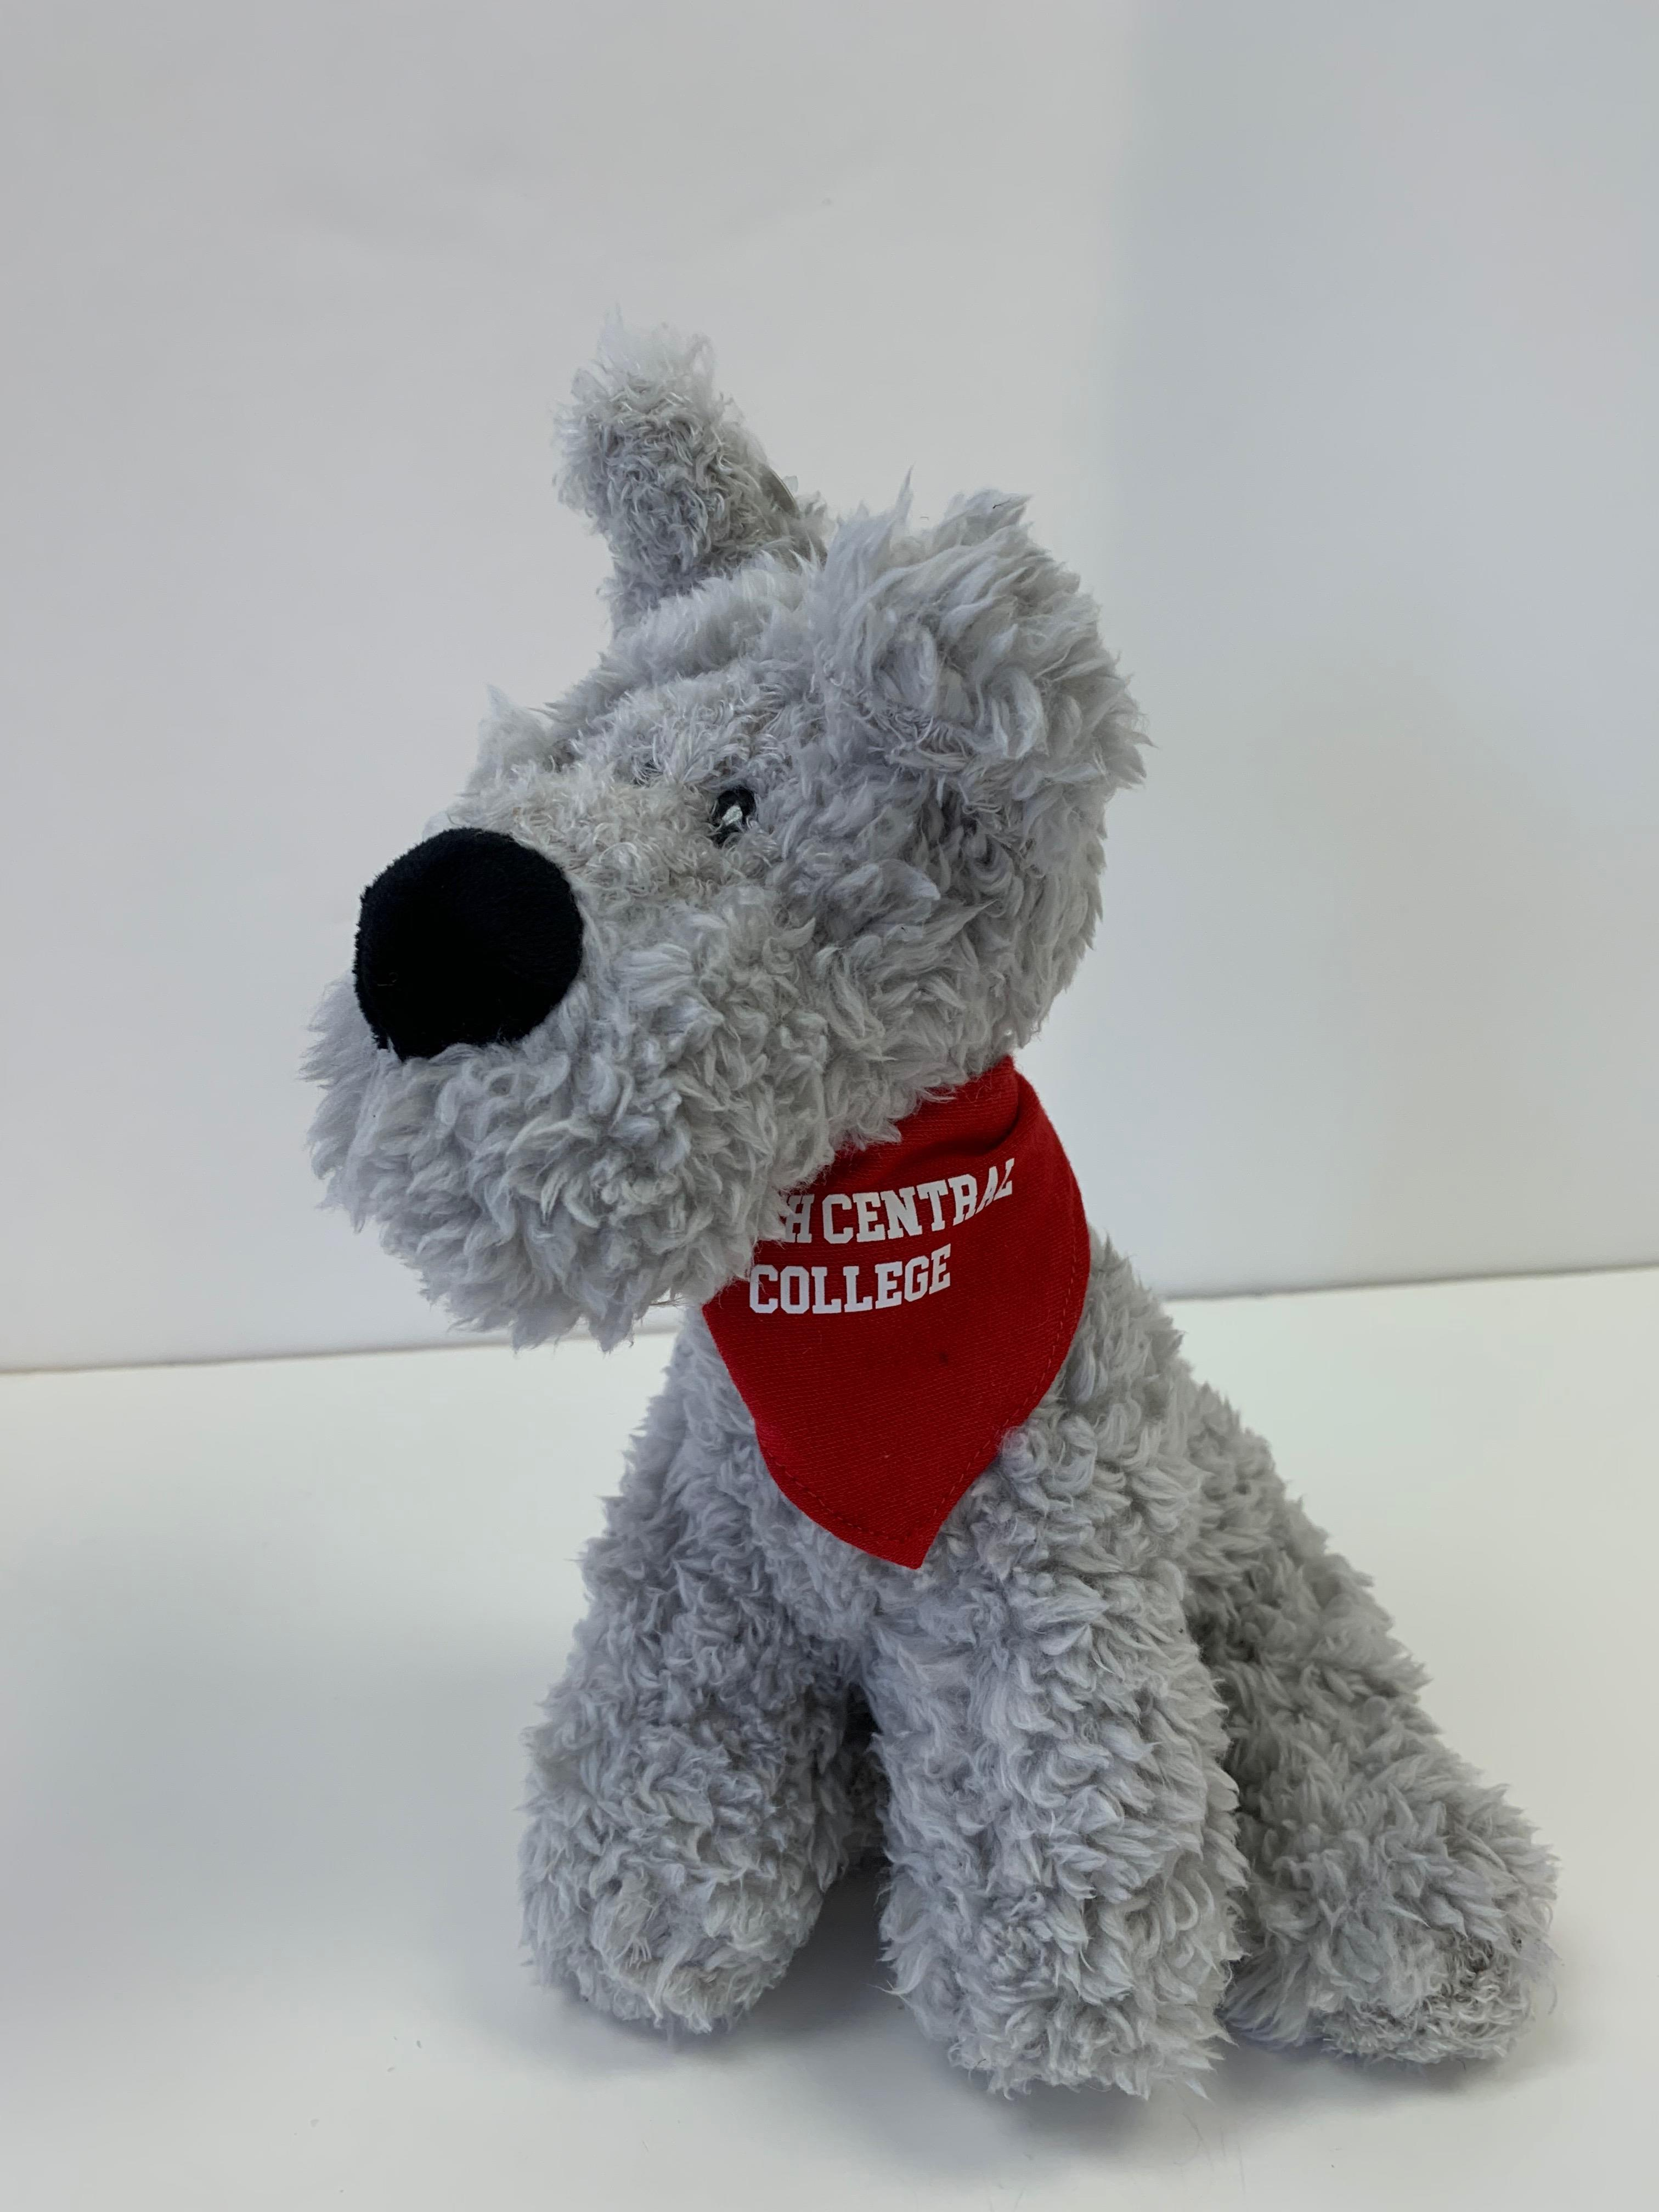 Image for the Mighty Tykes Plush Schnauzer product